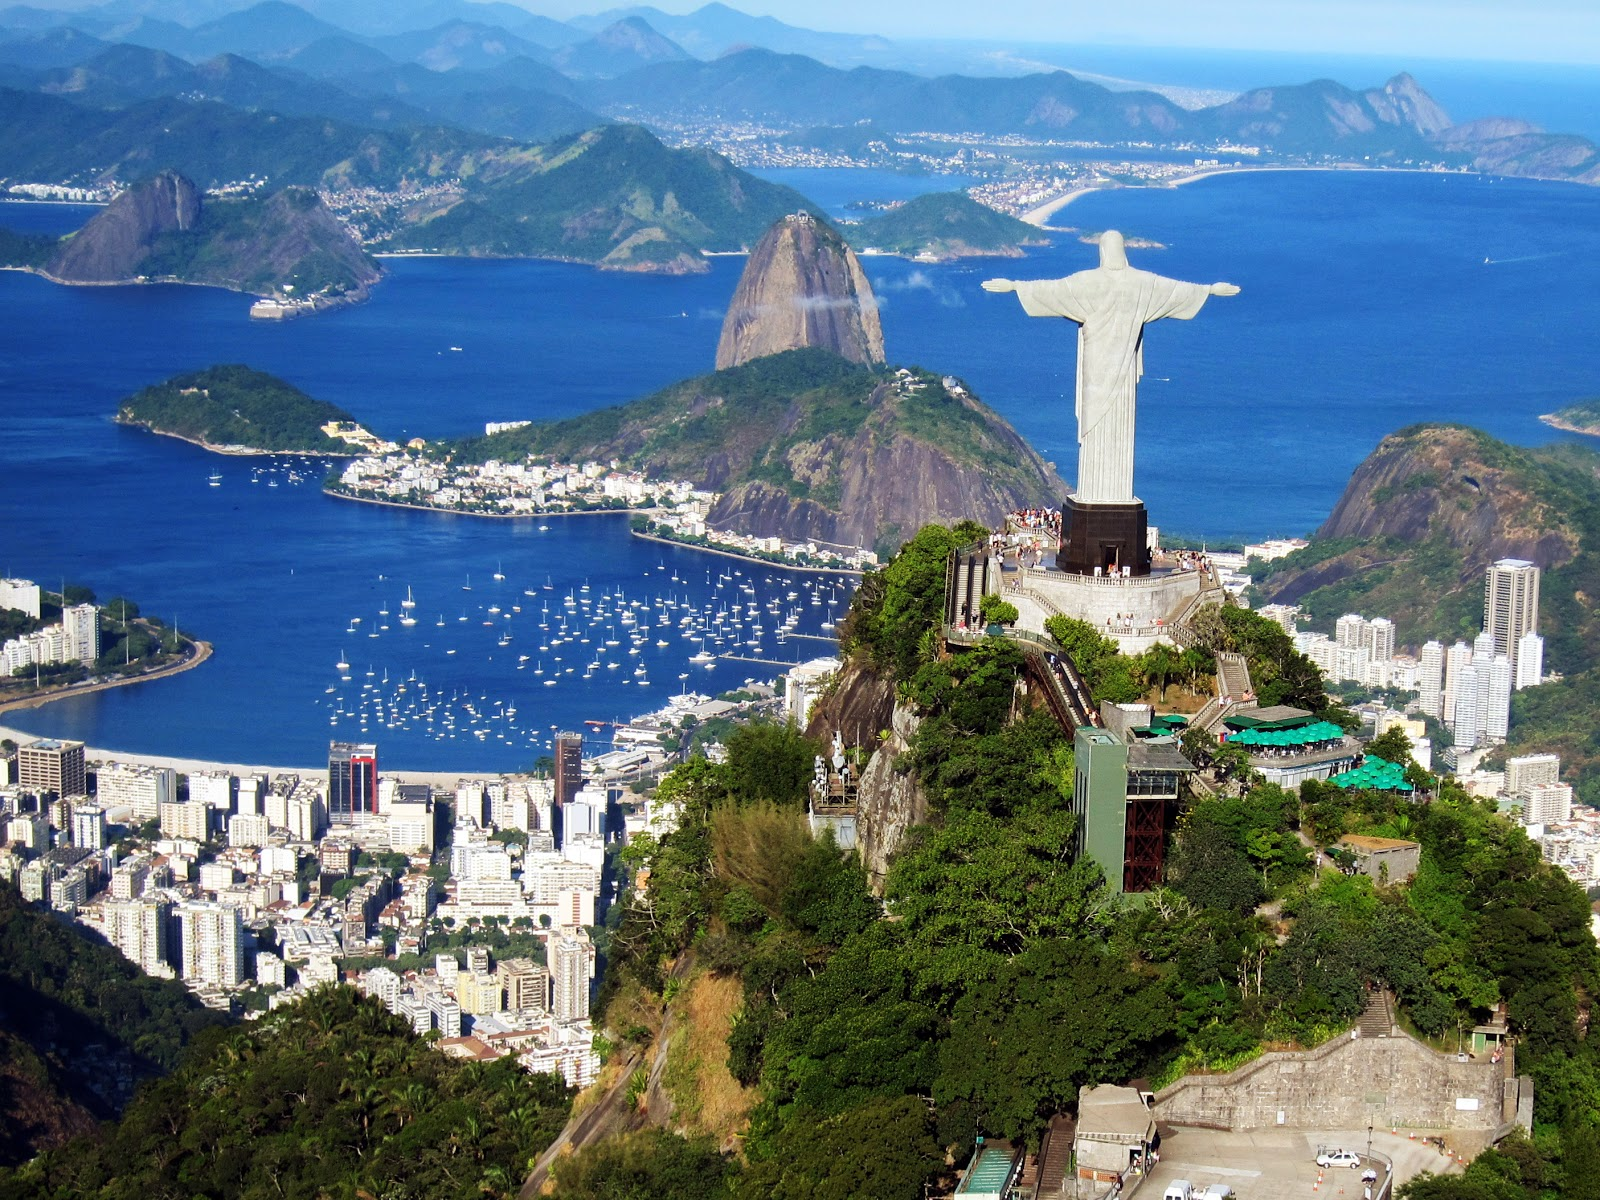 Brazil Iconic Statue On Corcovado Mountain In Rio De Janeiro - Brazil Iconic Statue On Corcovado Mountain In Rio De Janeiro